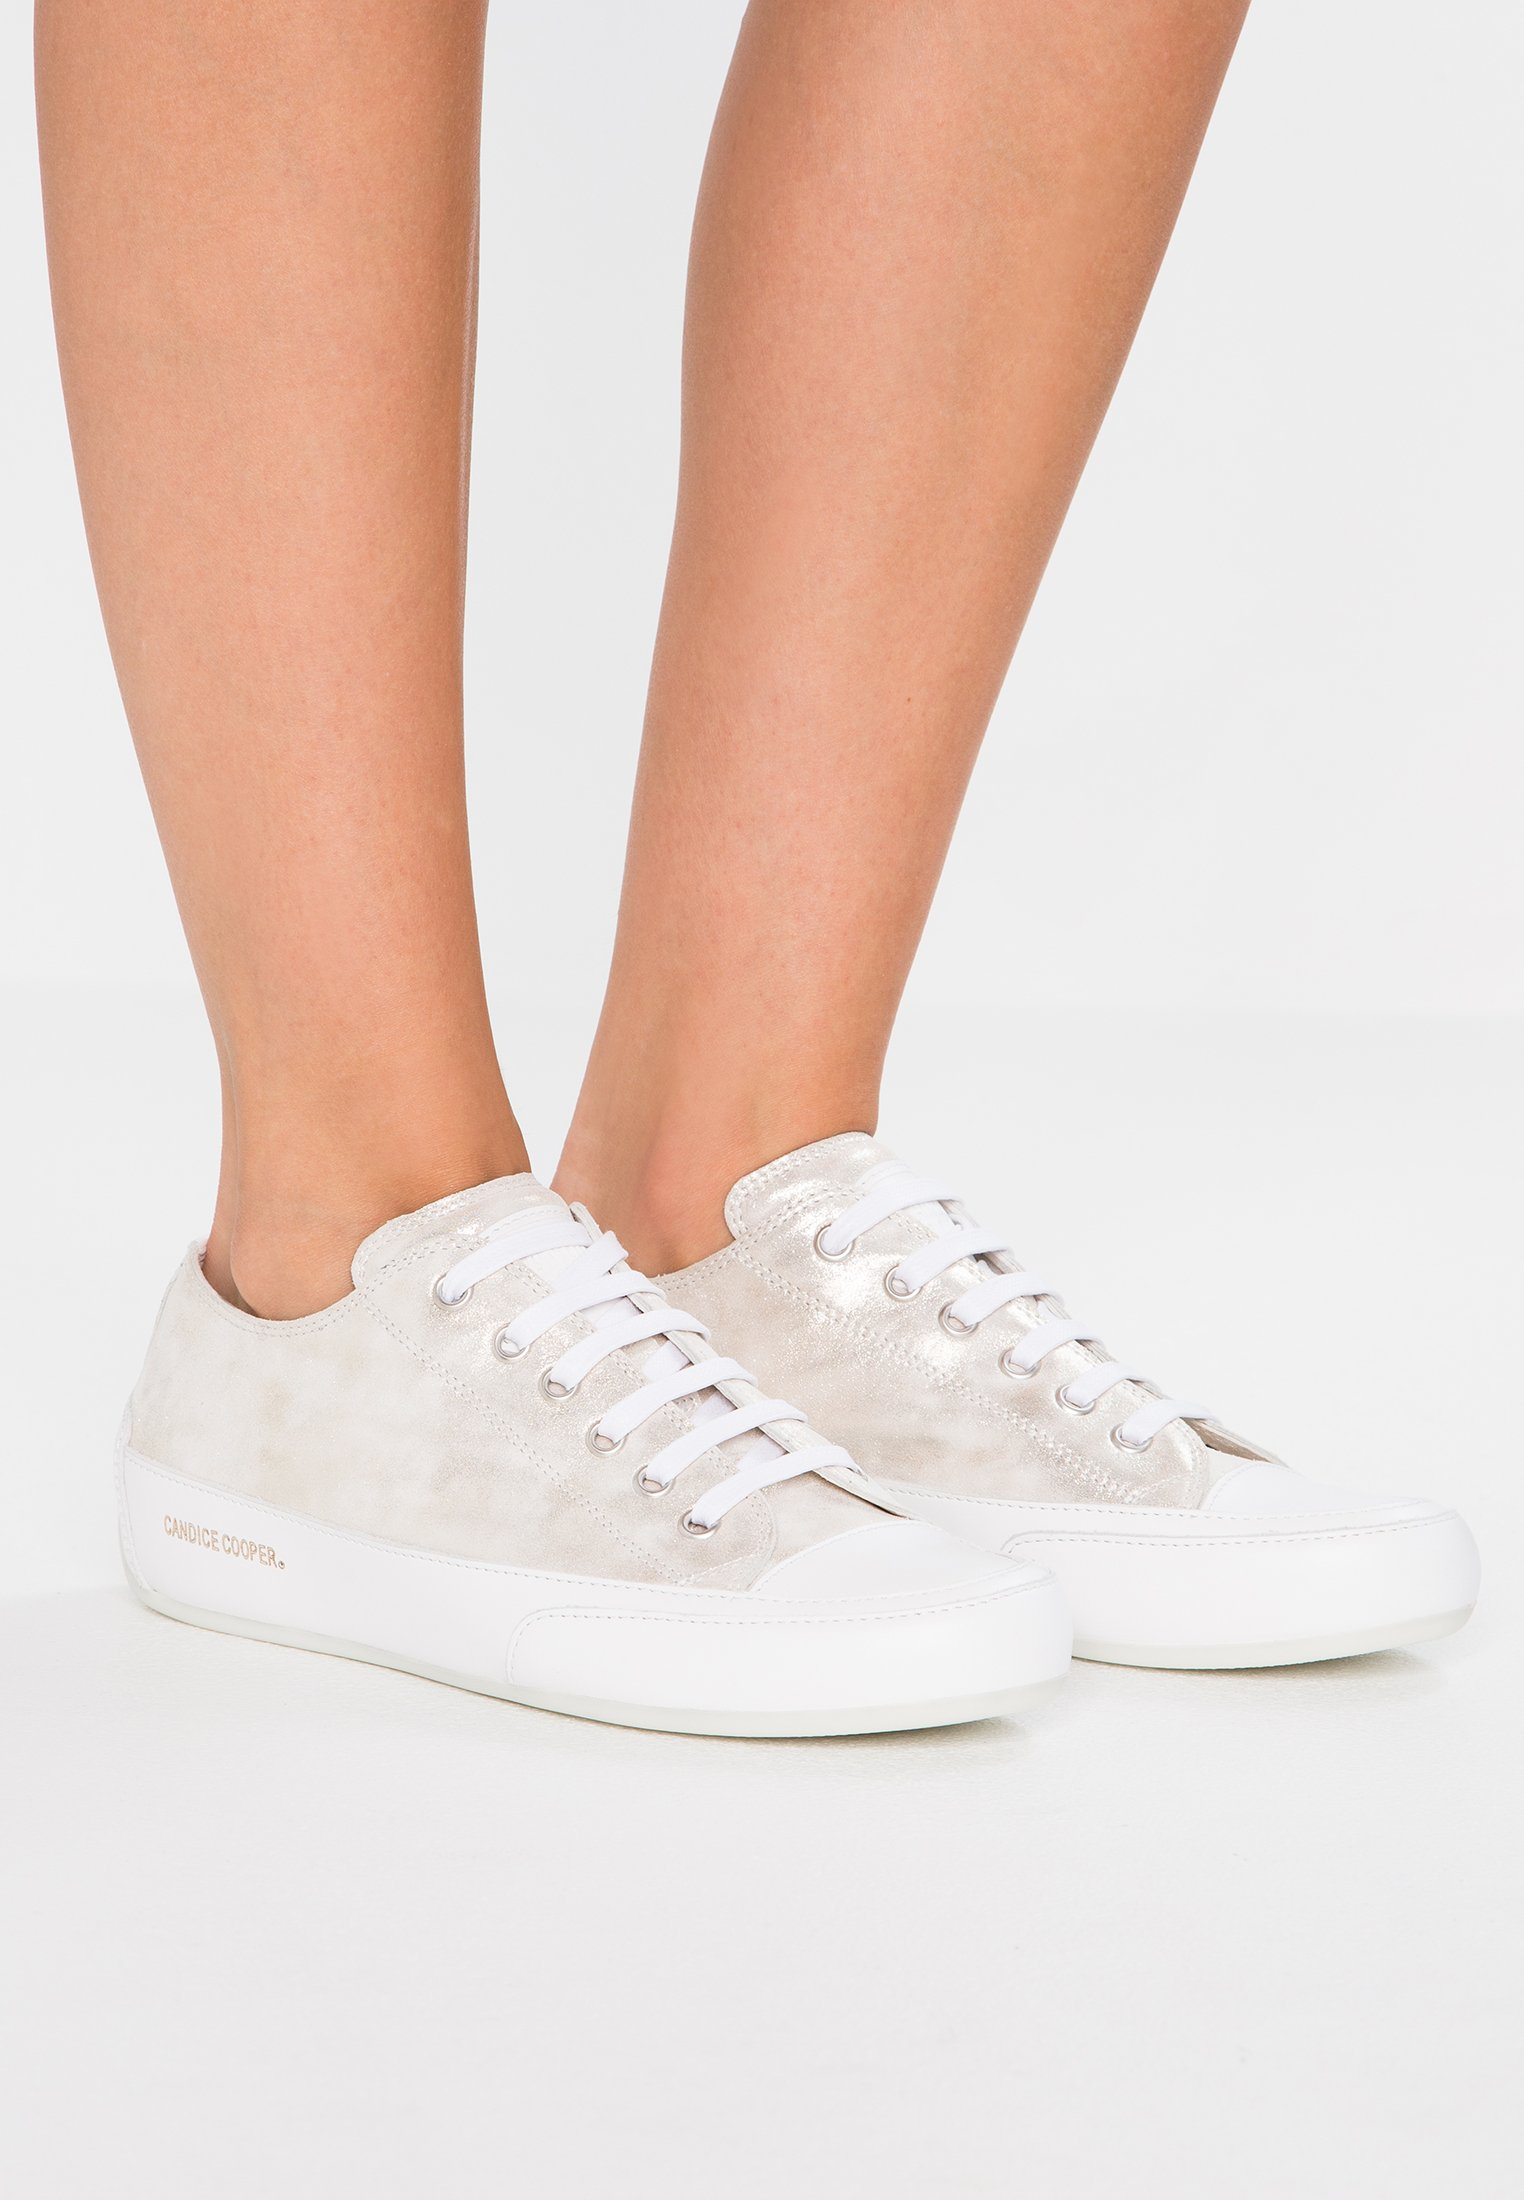 Candice Cooper ROCK - Sneakers basse monet ivory/base bianco